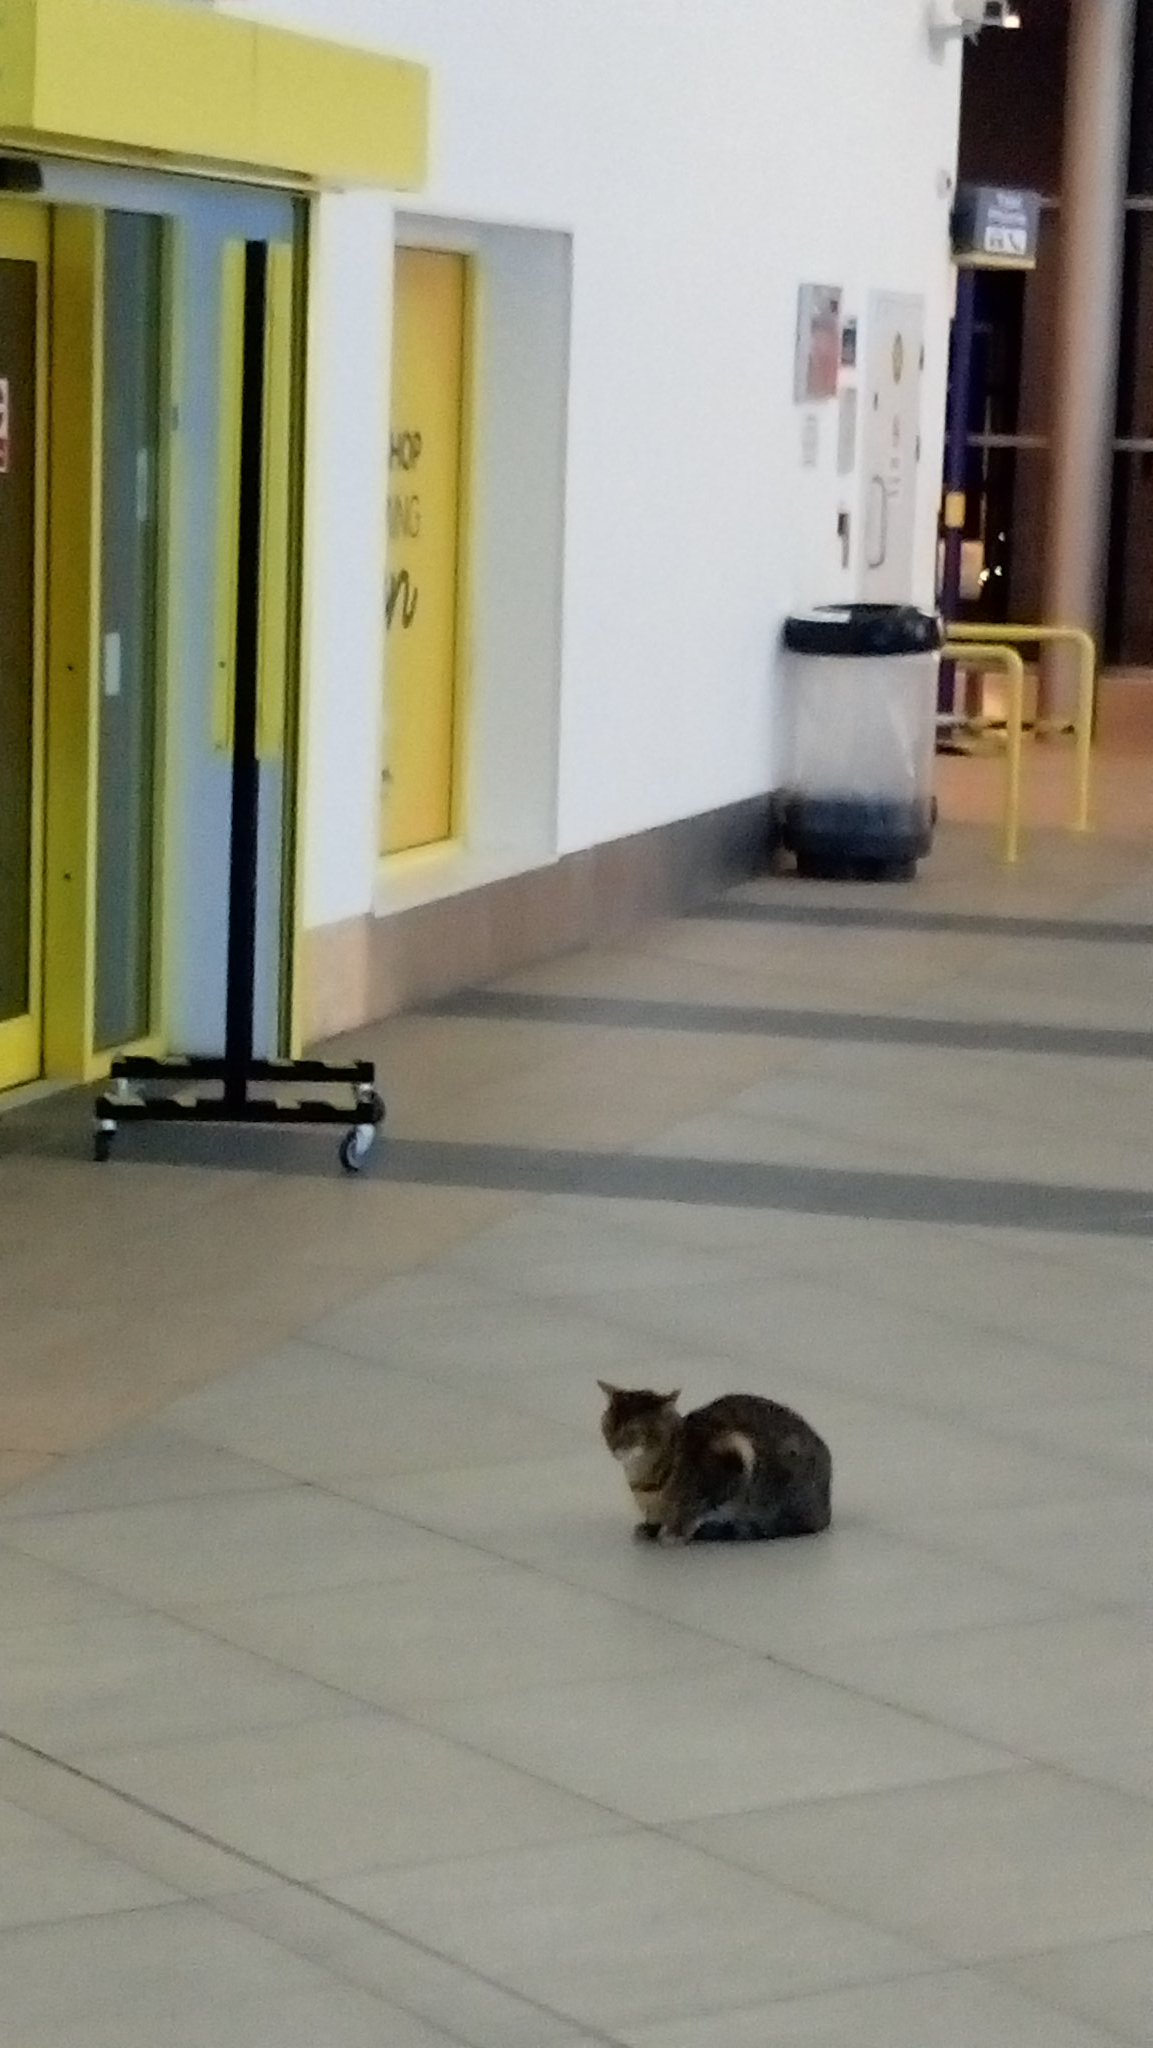 @thecatreviewer this cat has claimed Liverpool South Parkway station for their own. 10/10 for territorial ambition and sang-froid https://t.co/Eyhc4CJunx